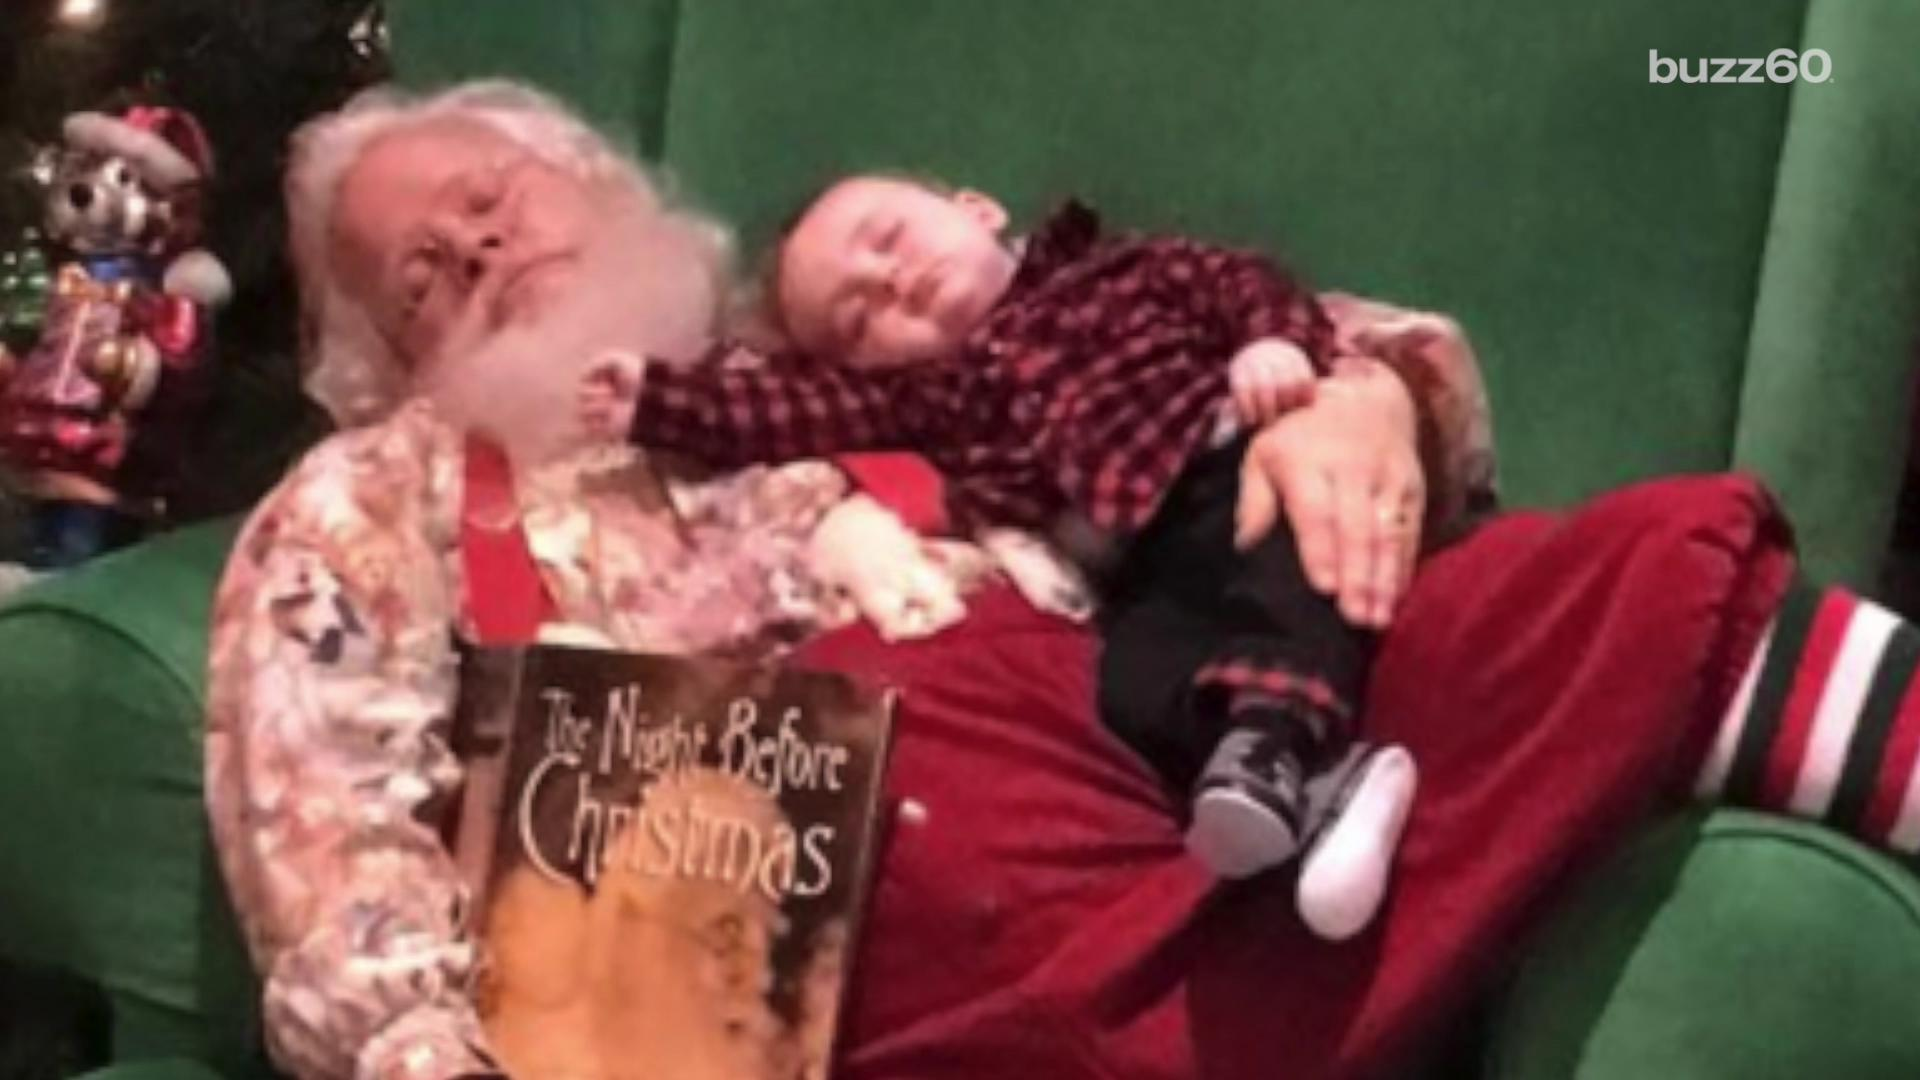 Saavy Santa knows just what to do with a sleeping baby